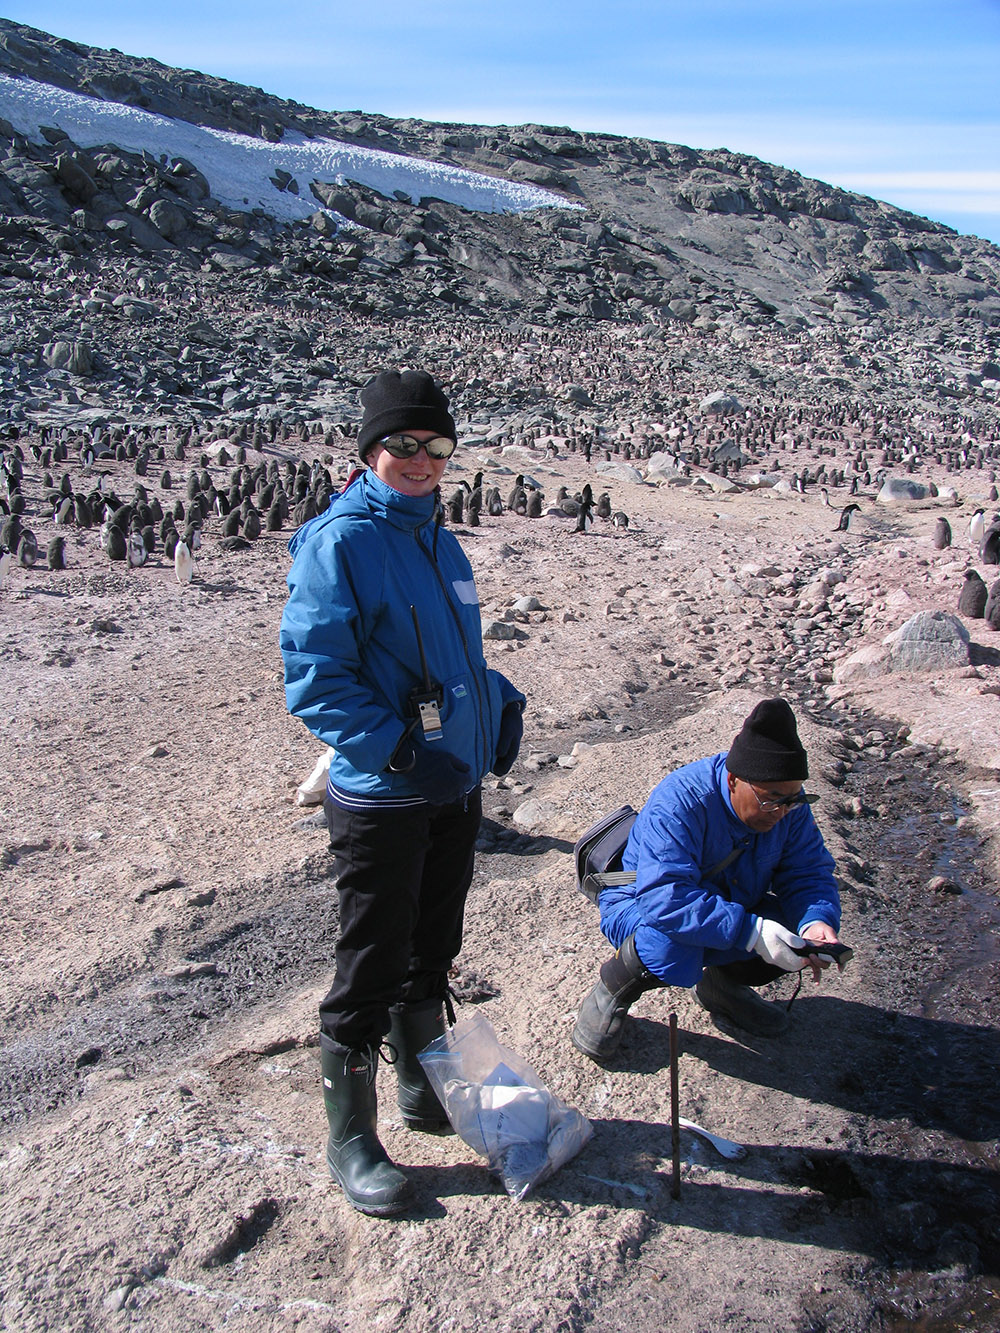 Coring, right next to a penguin rookery